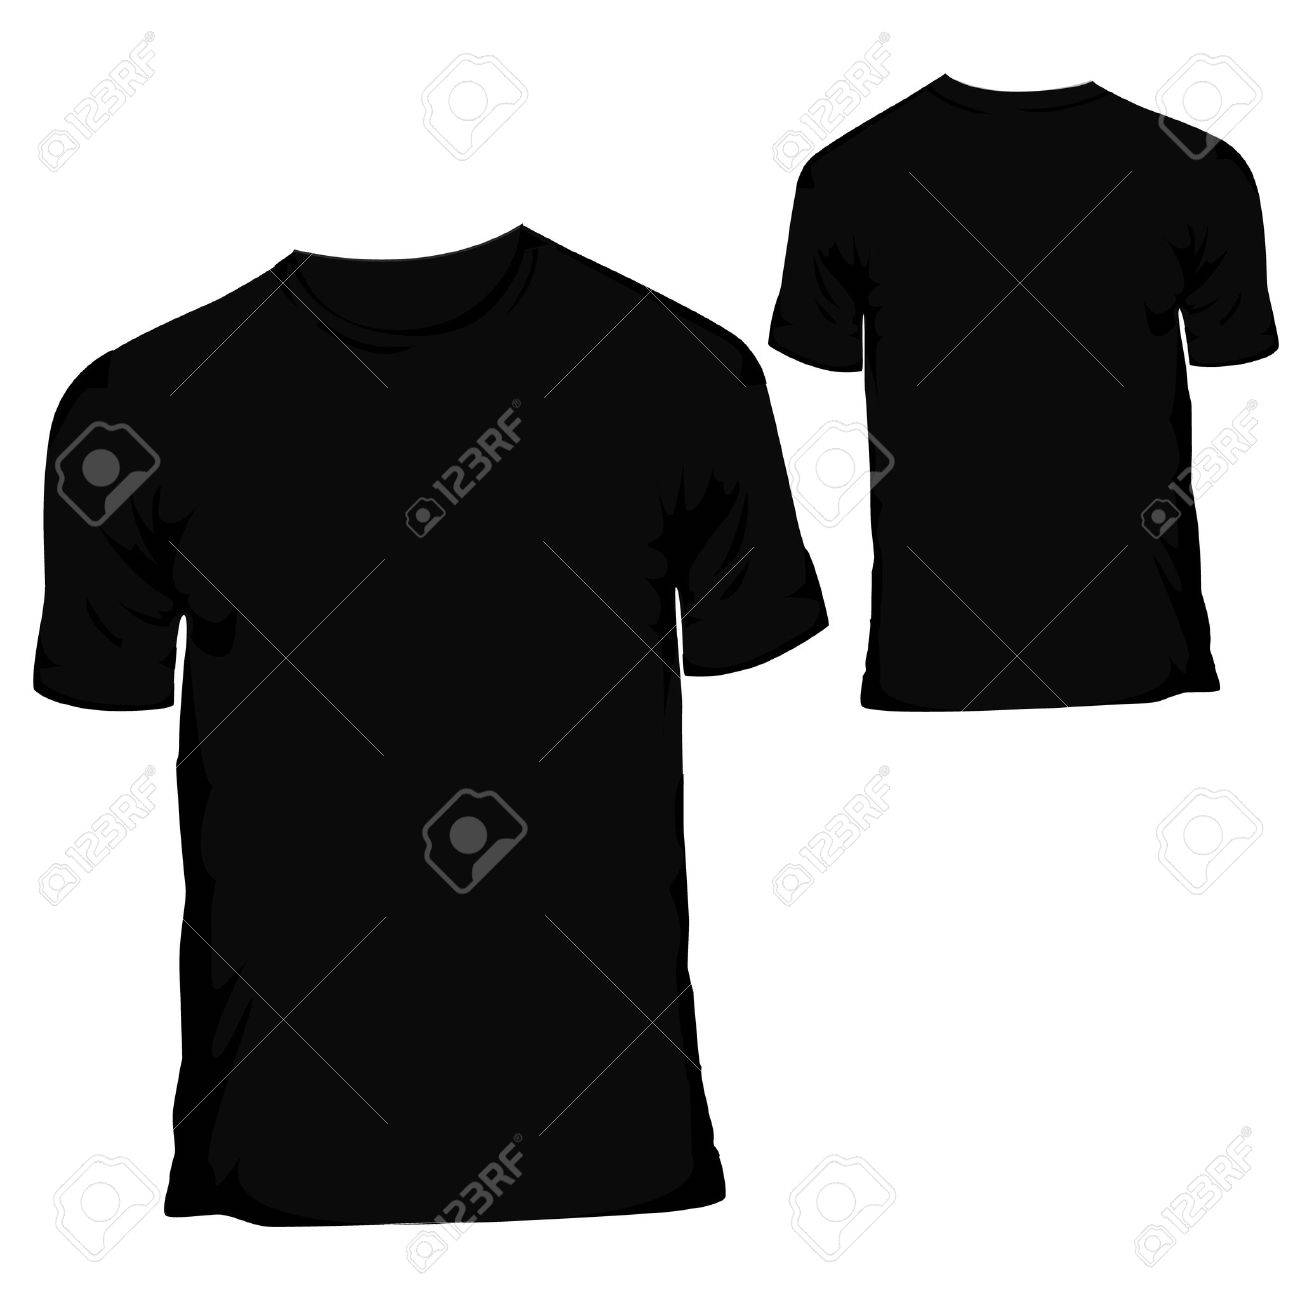 Black Blank T Shirt Design Template For Menswear Stock Vector